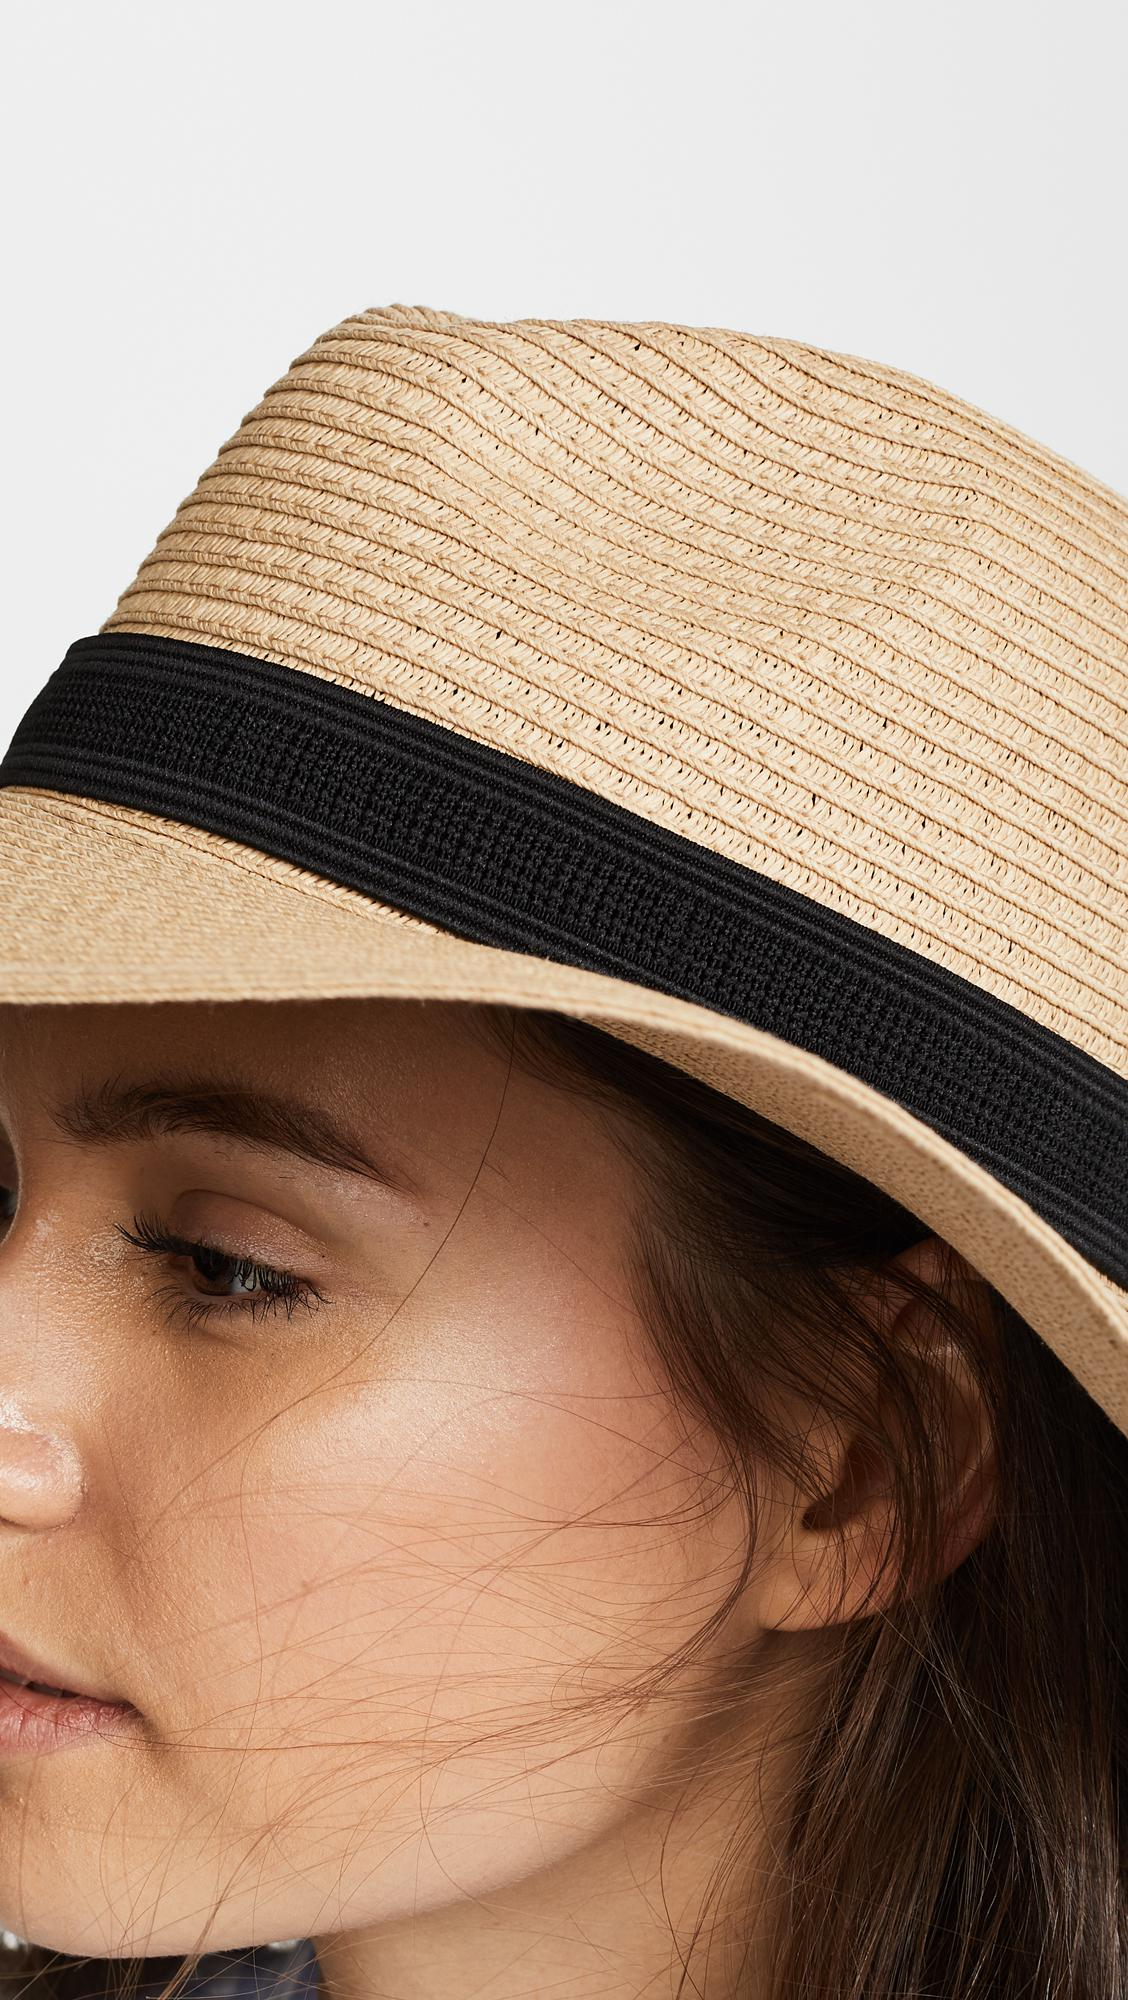 13424faf8a6 Madewell - Multicolor Packable Mesa Straw Hat - Lyst. View fullscreen